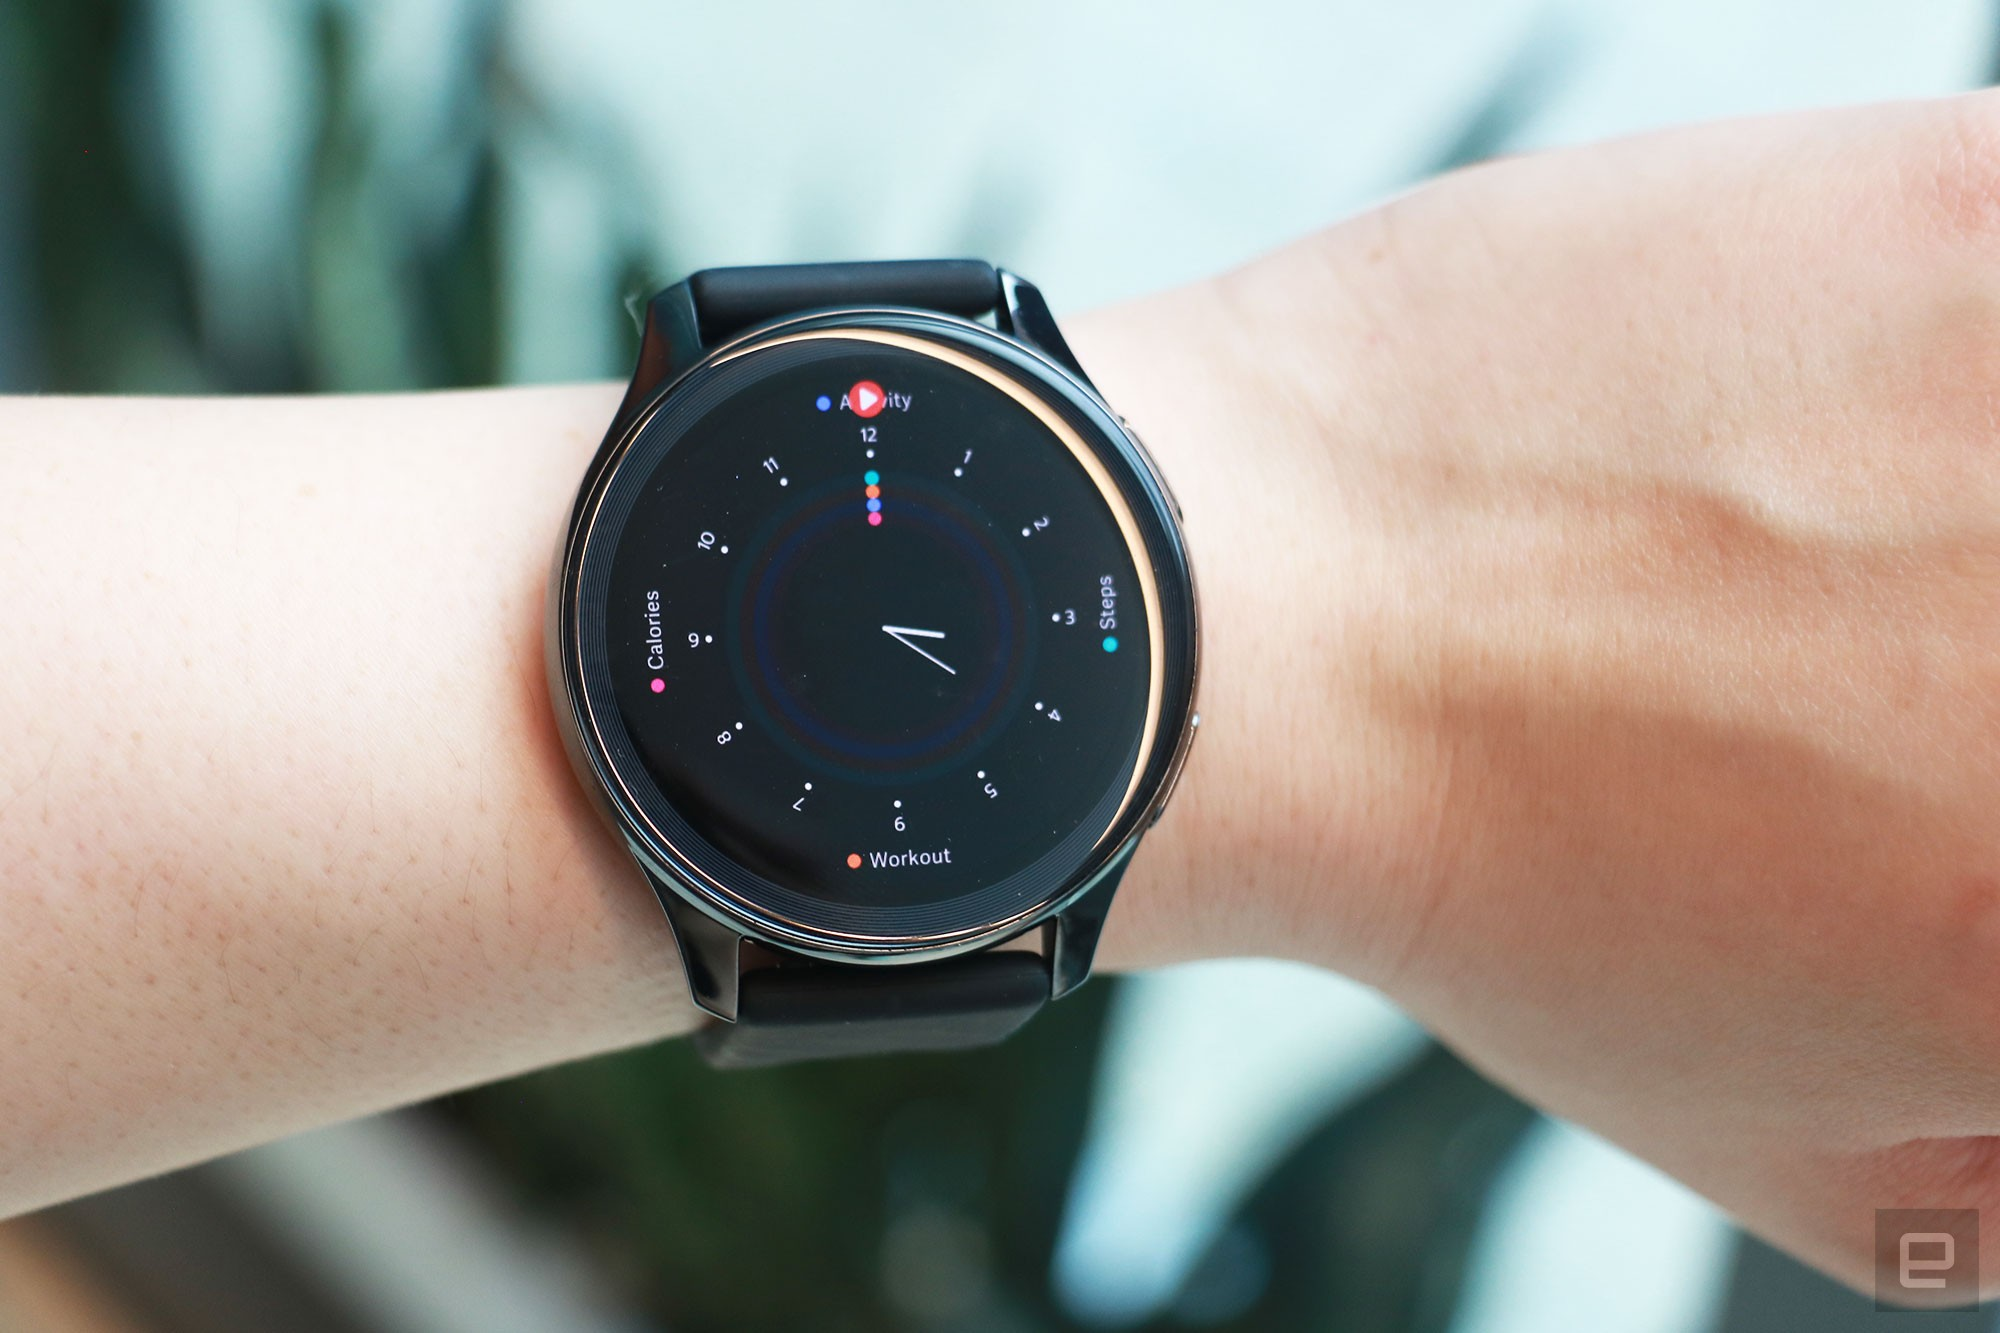 <p>OnePlus Watch review photos. OnePlus Watch on a wrist showing a faux analog watch face with markers for progress on Calories, Steps and Workout.</p>